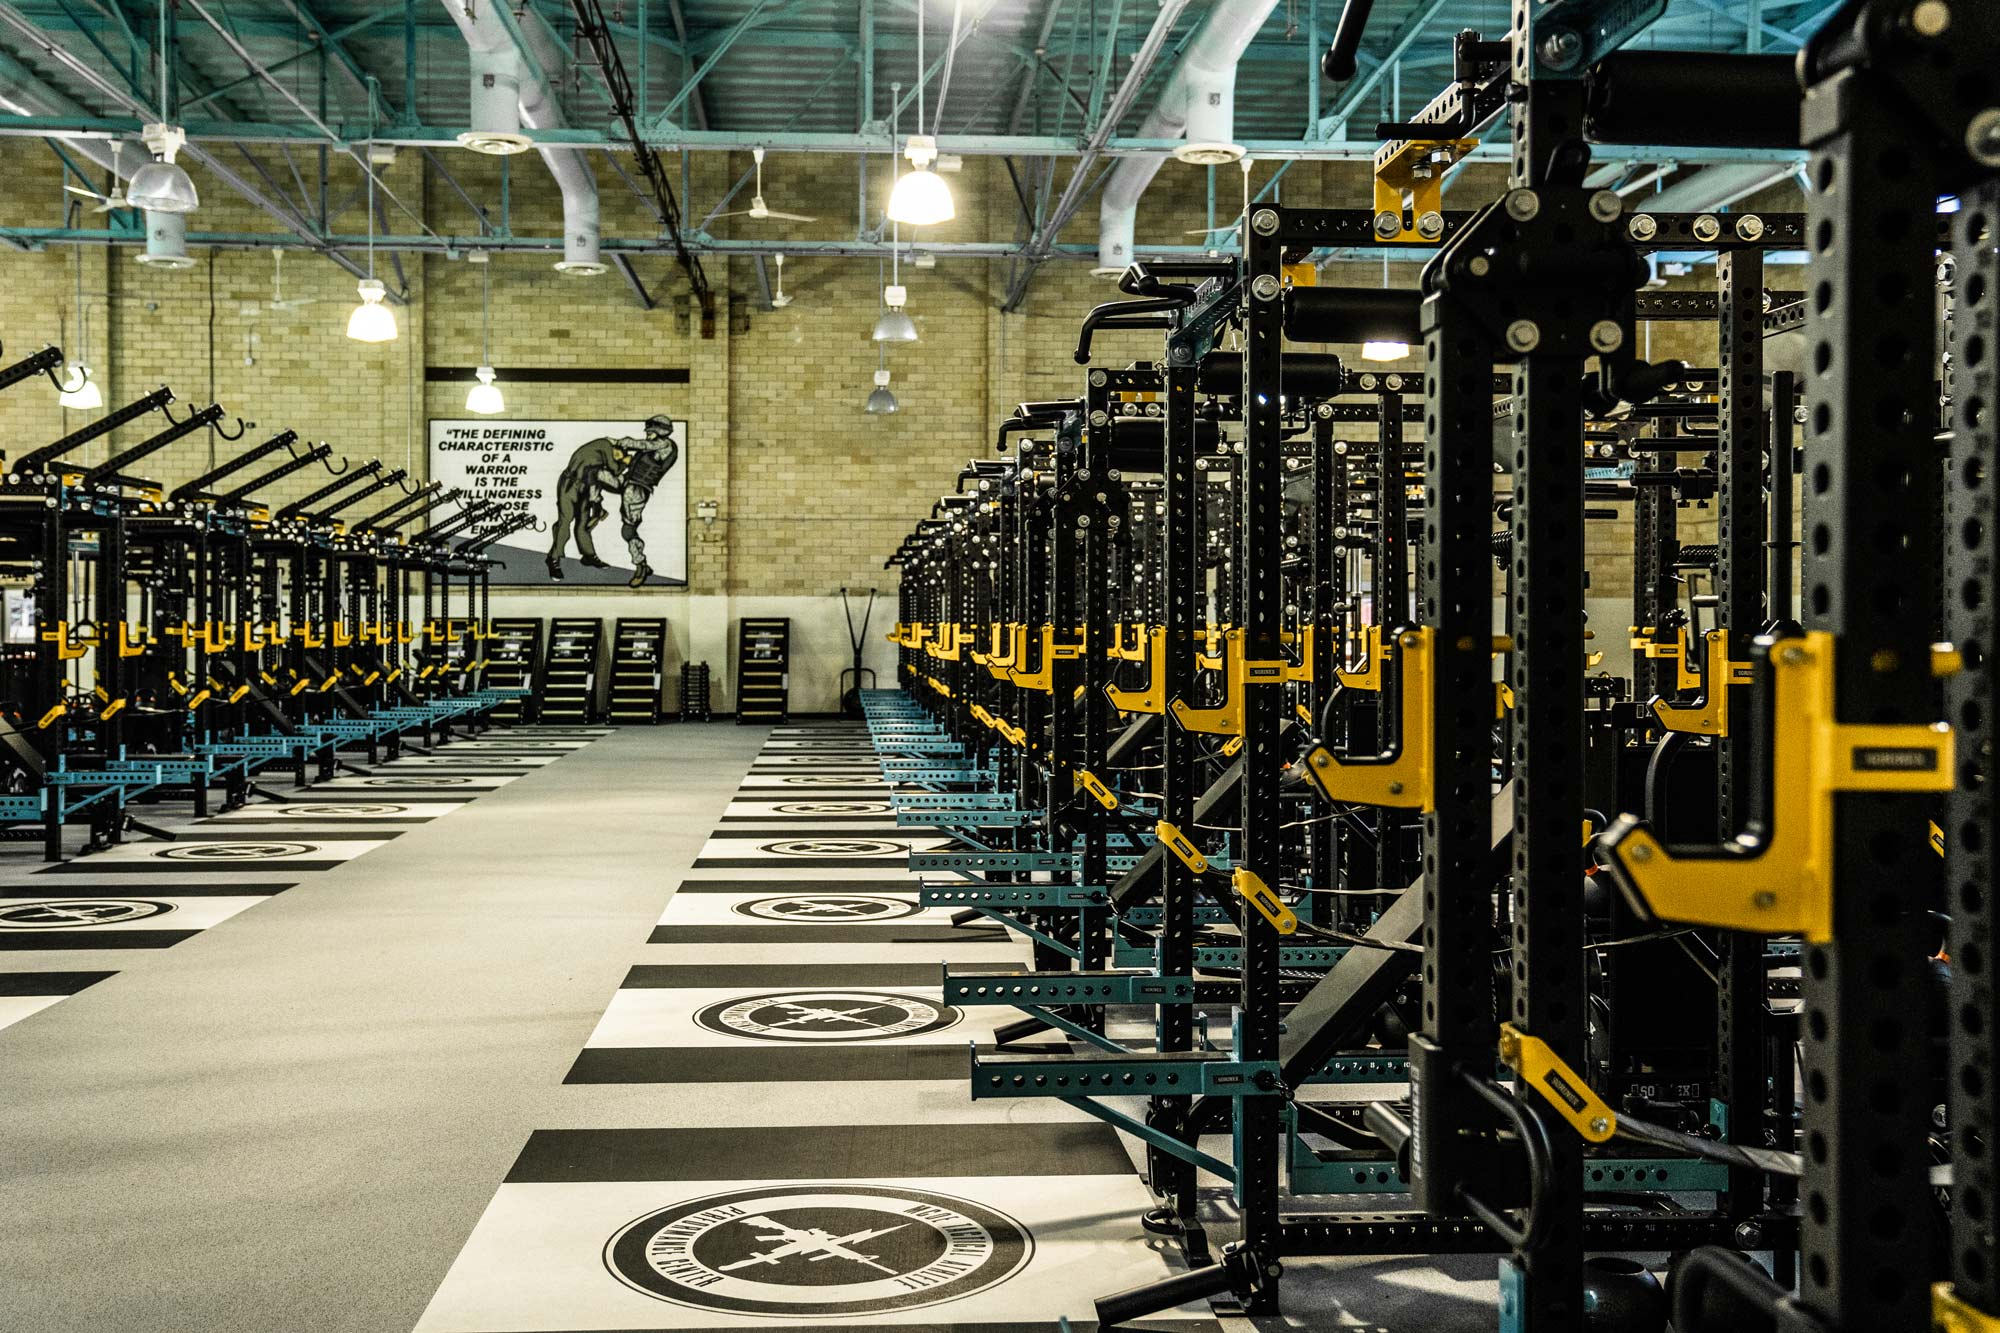 Fort Benning Strength and conditioning facility by Sorinex